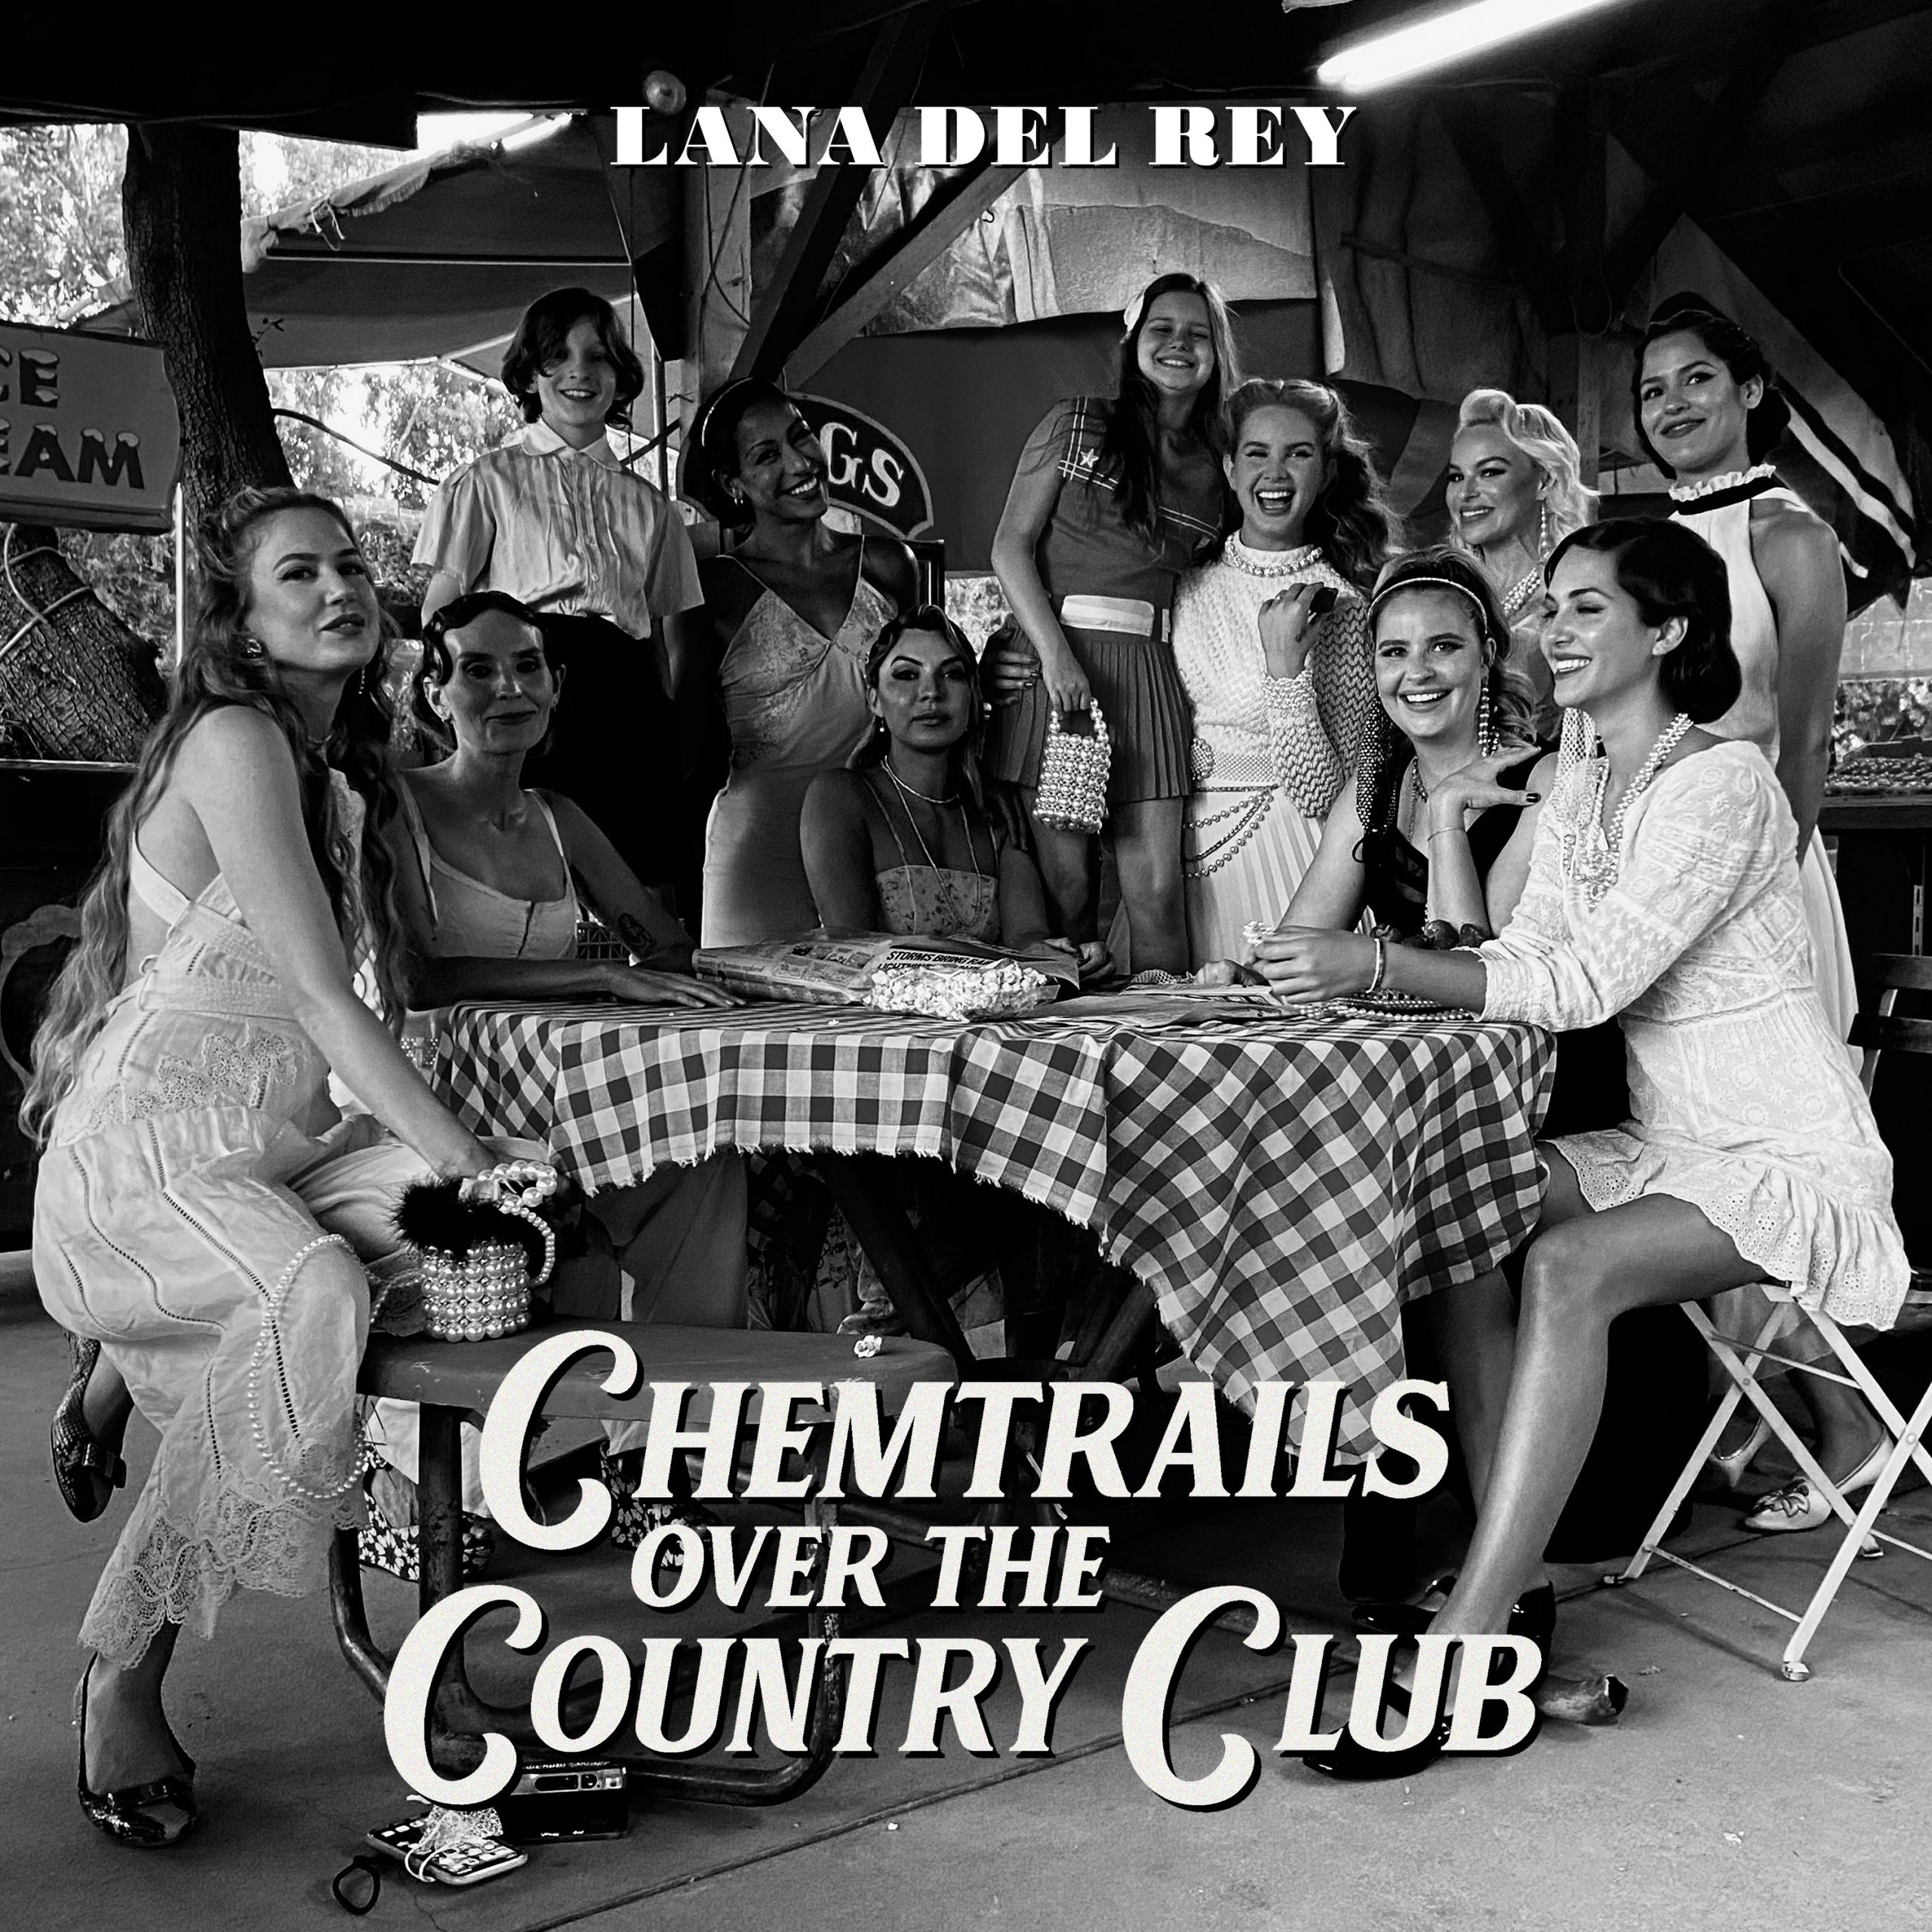 Lana Del Rey - Chemtrails Over The Country Club [LTD LP] (Yellow Vinyl)